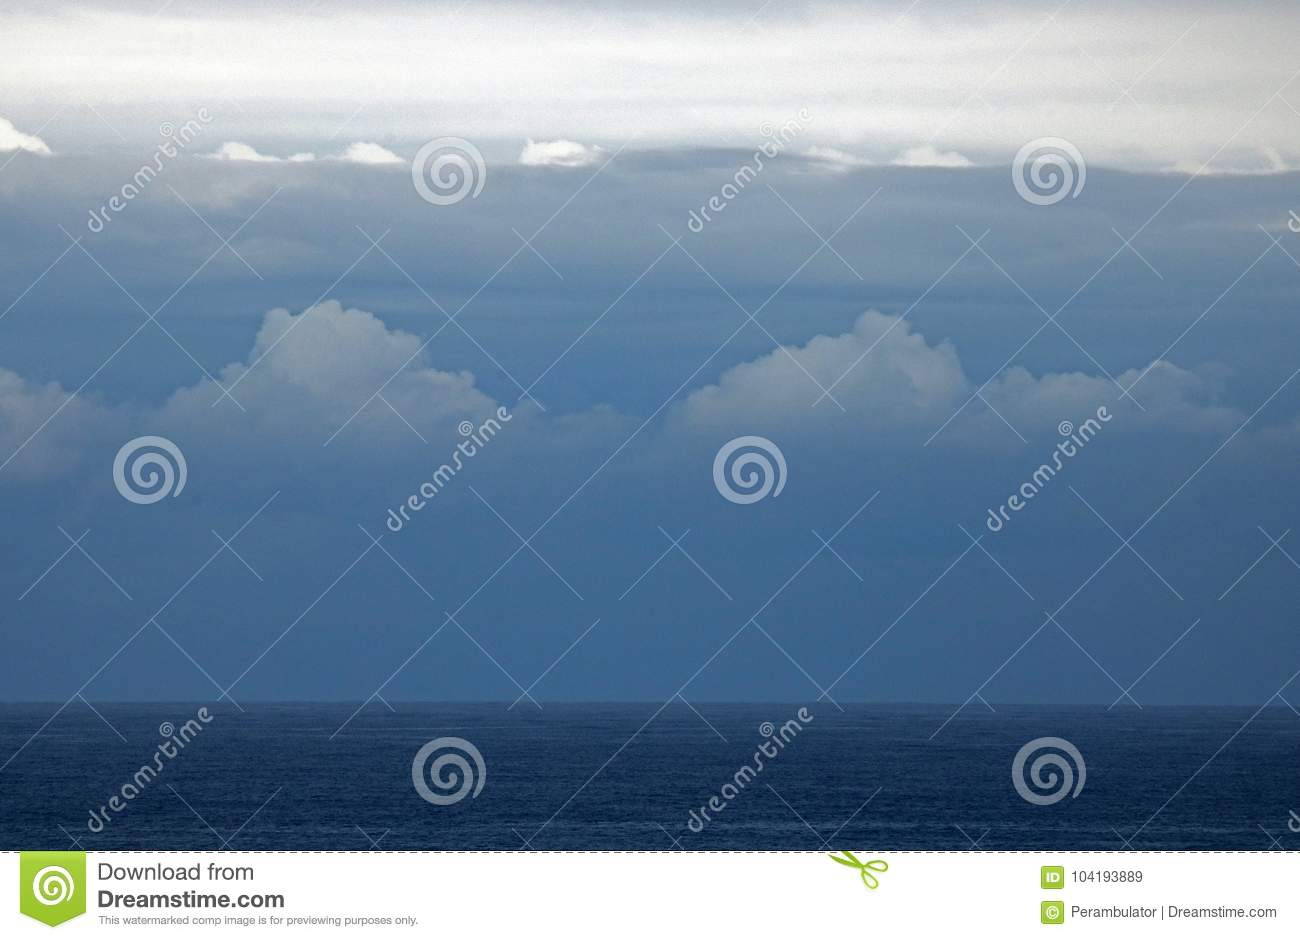 LAYERS OF CLOUD OVER THE OCEAN